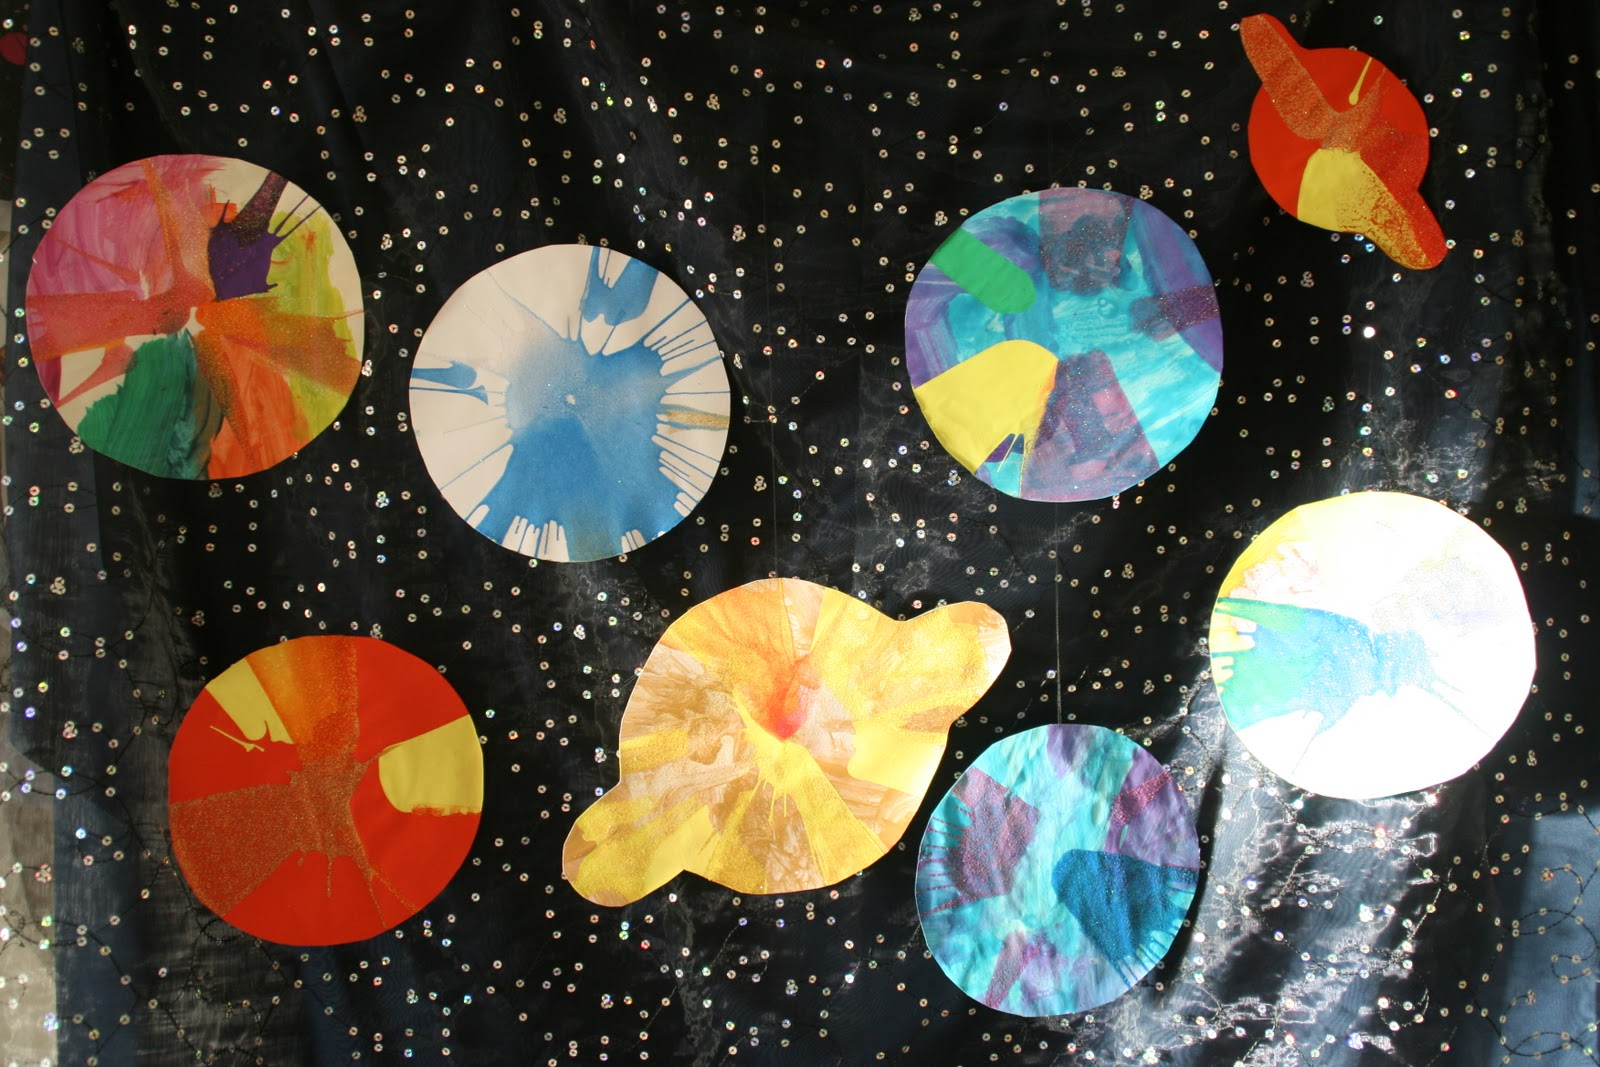 solar system paintings - photo #35